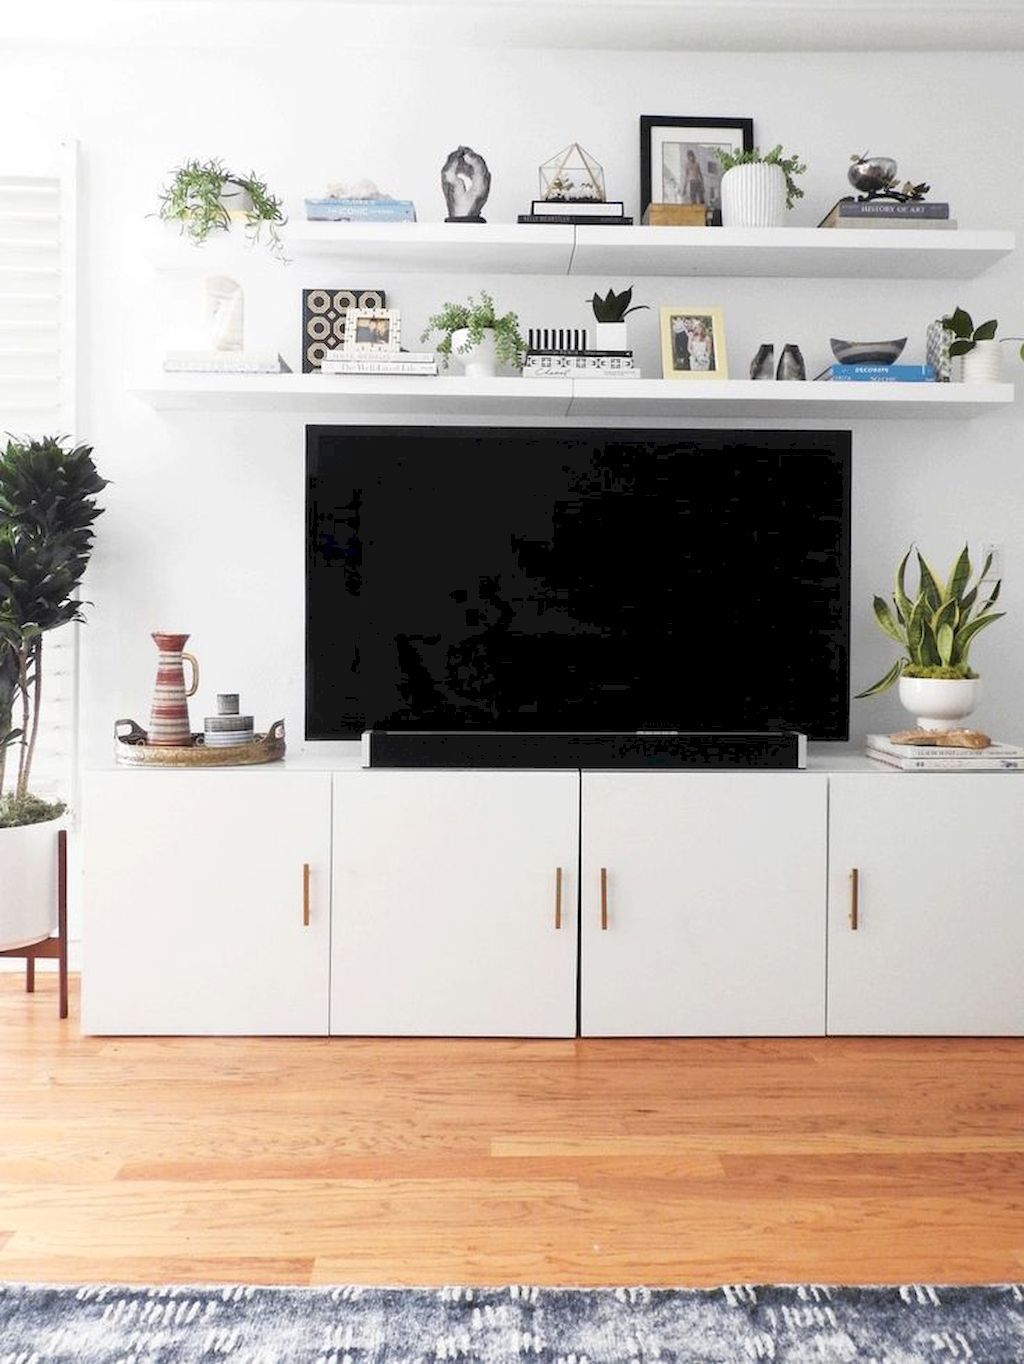 Gorgeous Home Pictures Cool Tv Stand Ideas For Living Room Https Carribeanpic Com Home Pictures C Living Room Tv Stand Living Room Tv Apartment Living Room